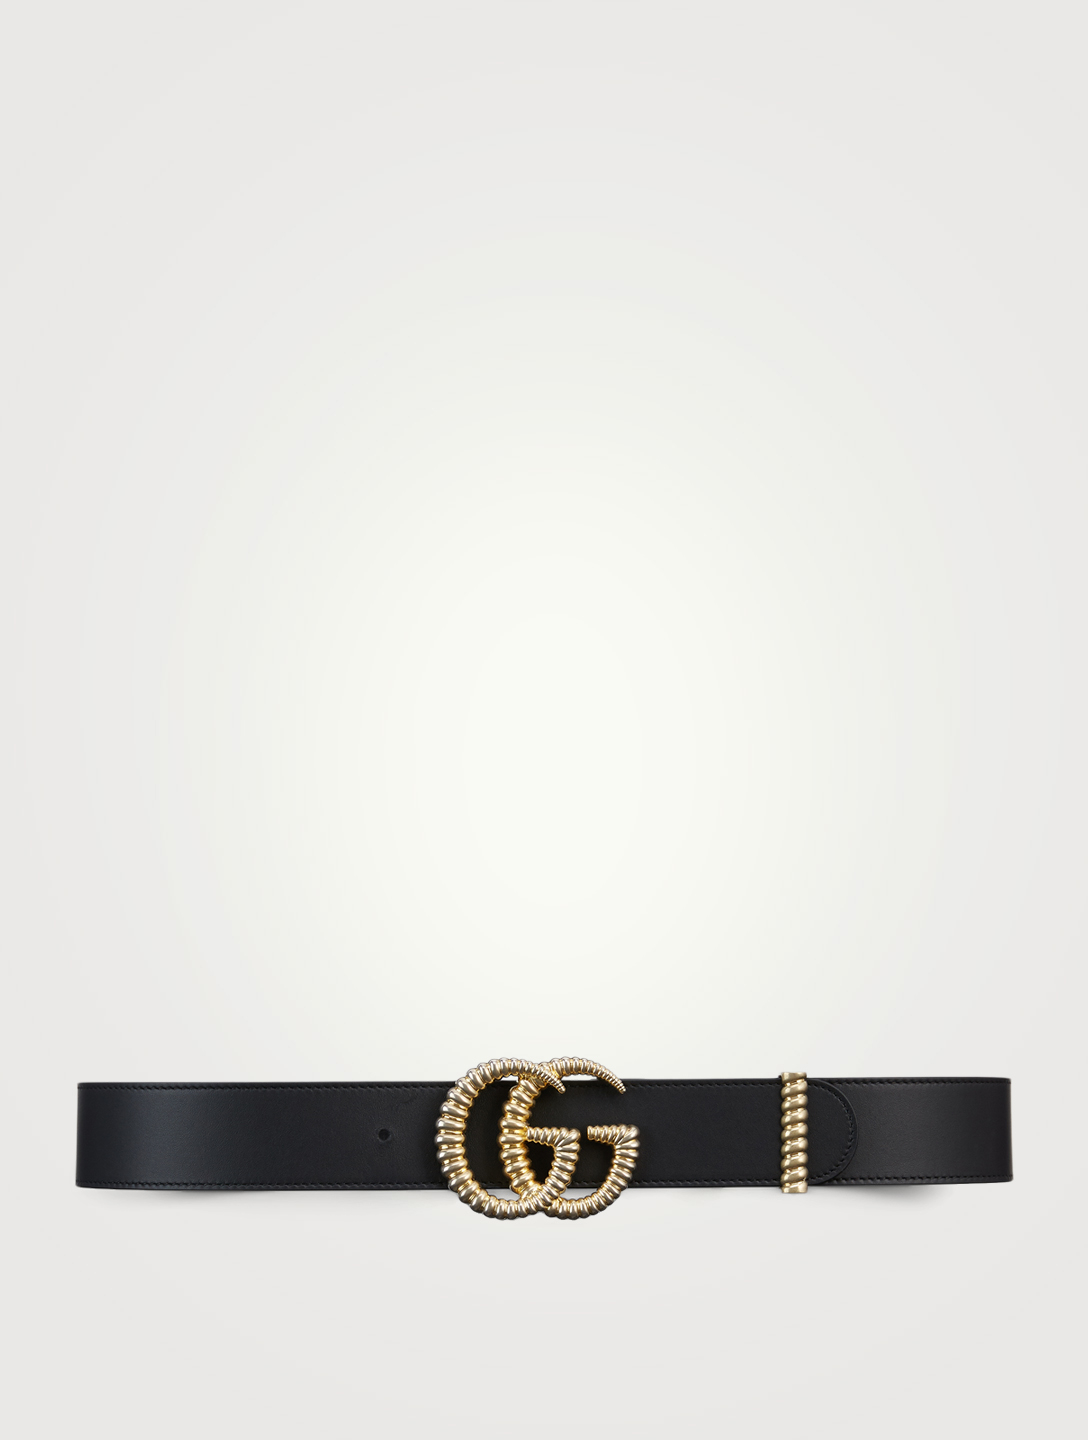 GUCCI Leather Belt With Torchon Double G Buckle Women's Black